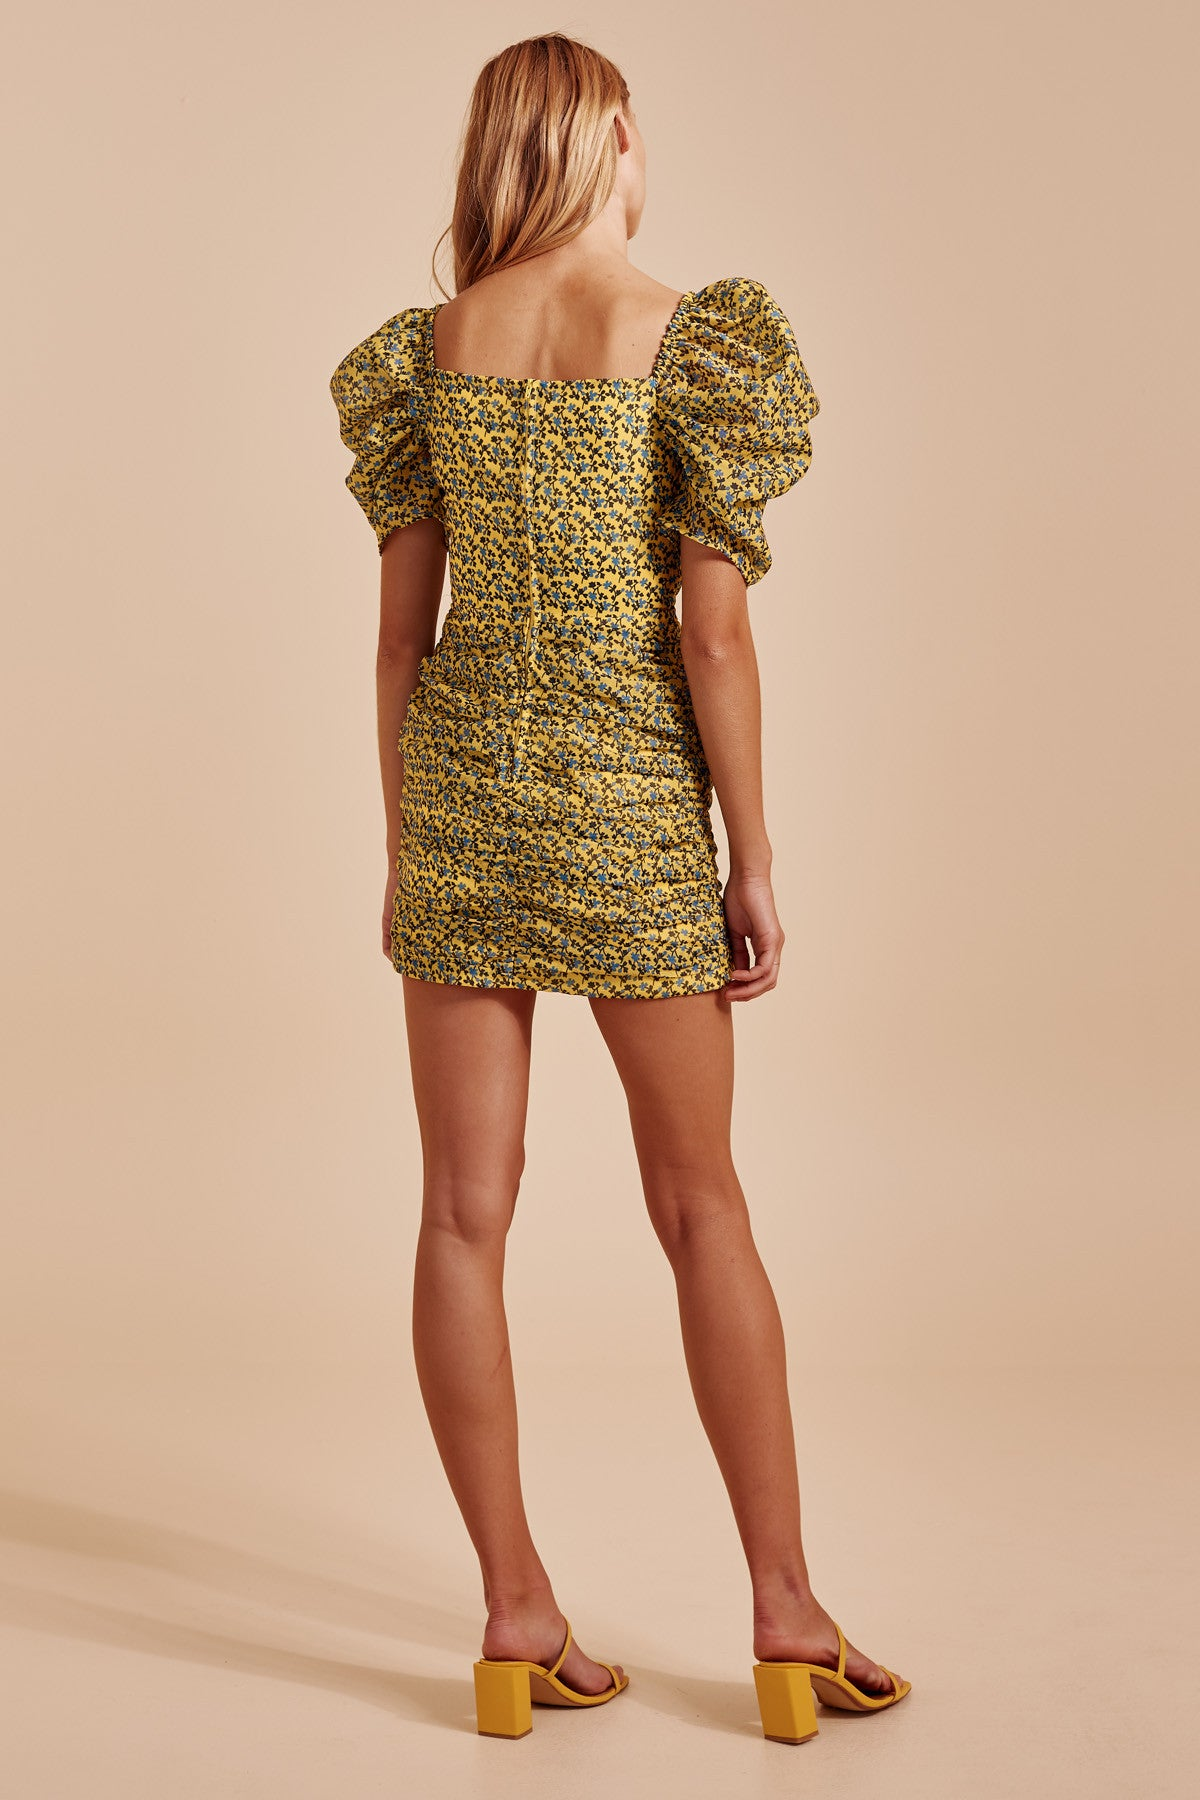 COME ACROSS SHORT SLEEVE DRESS yellow floral